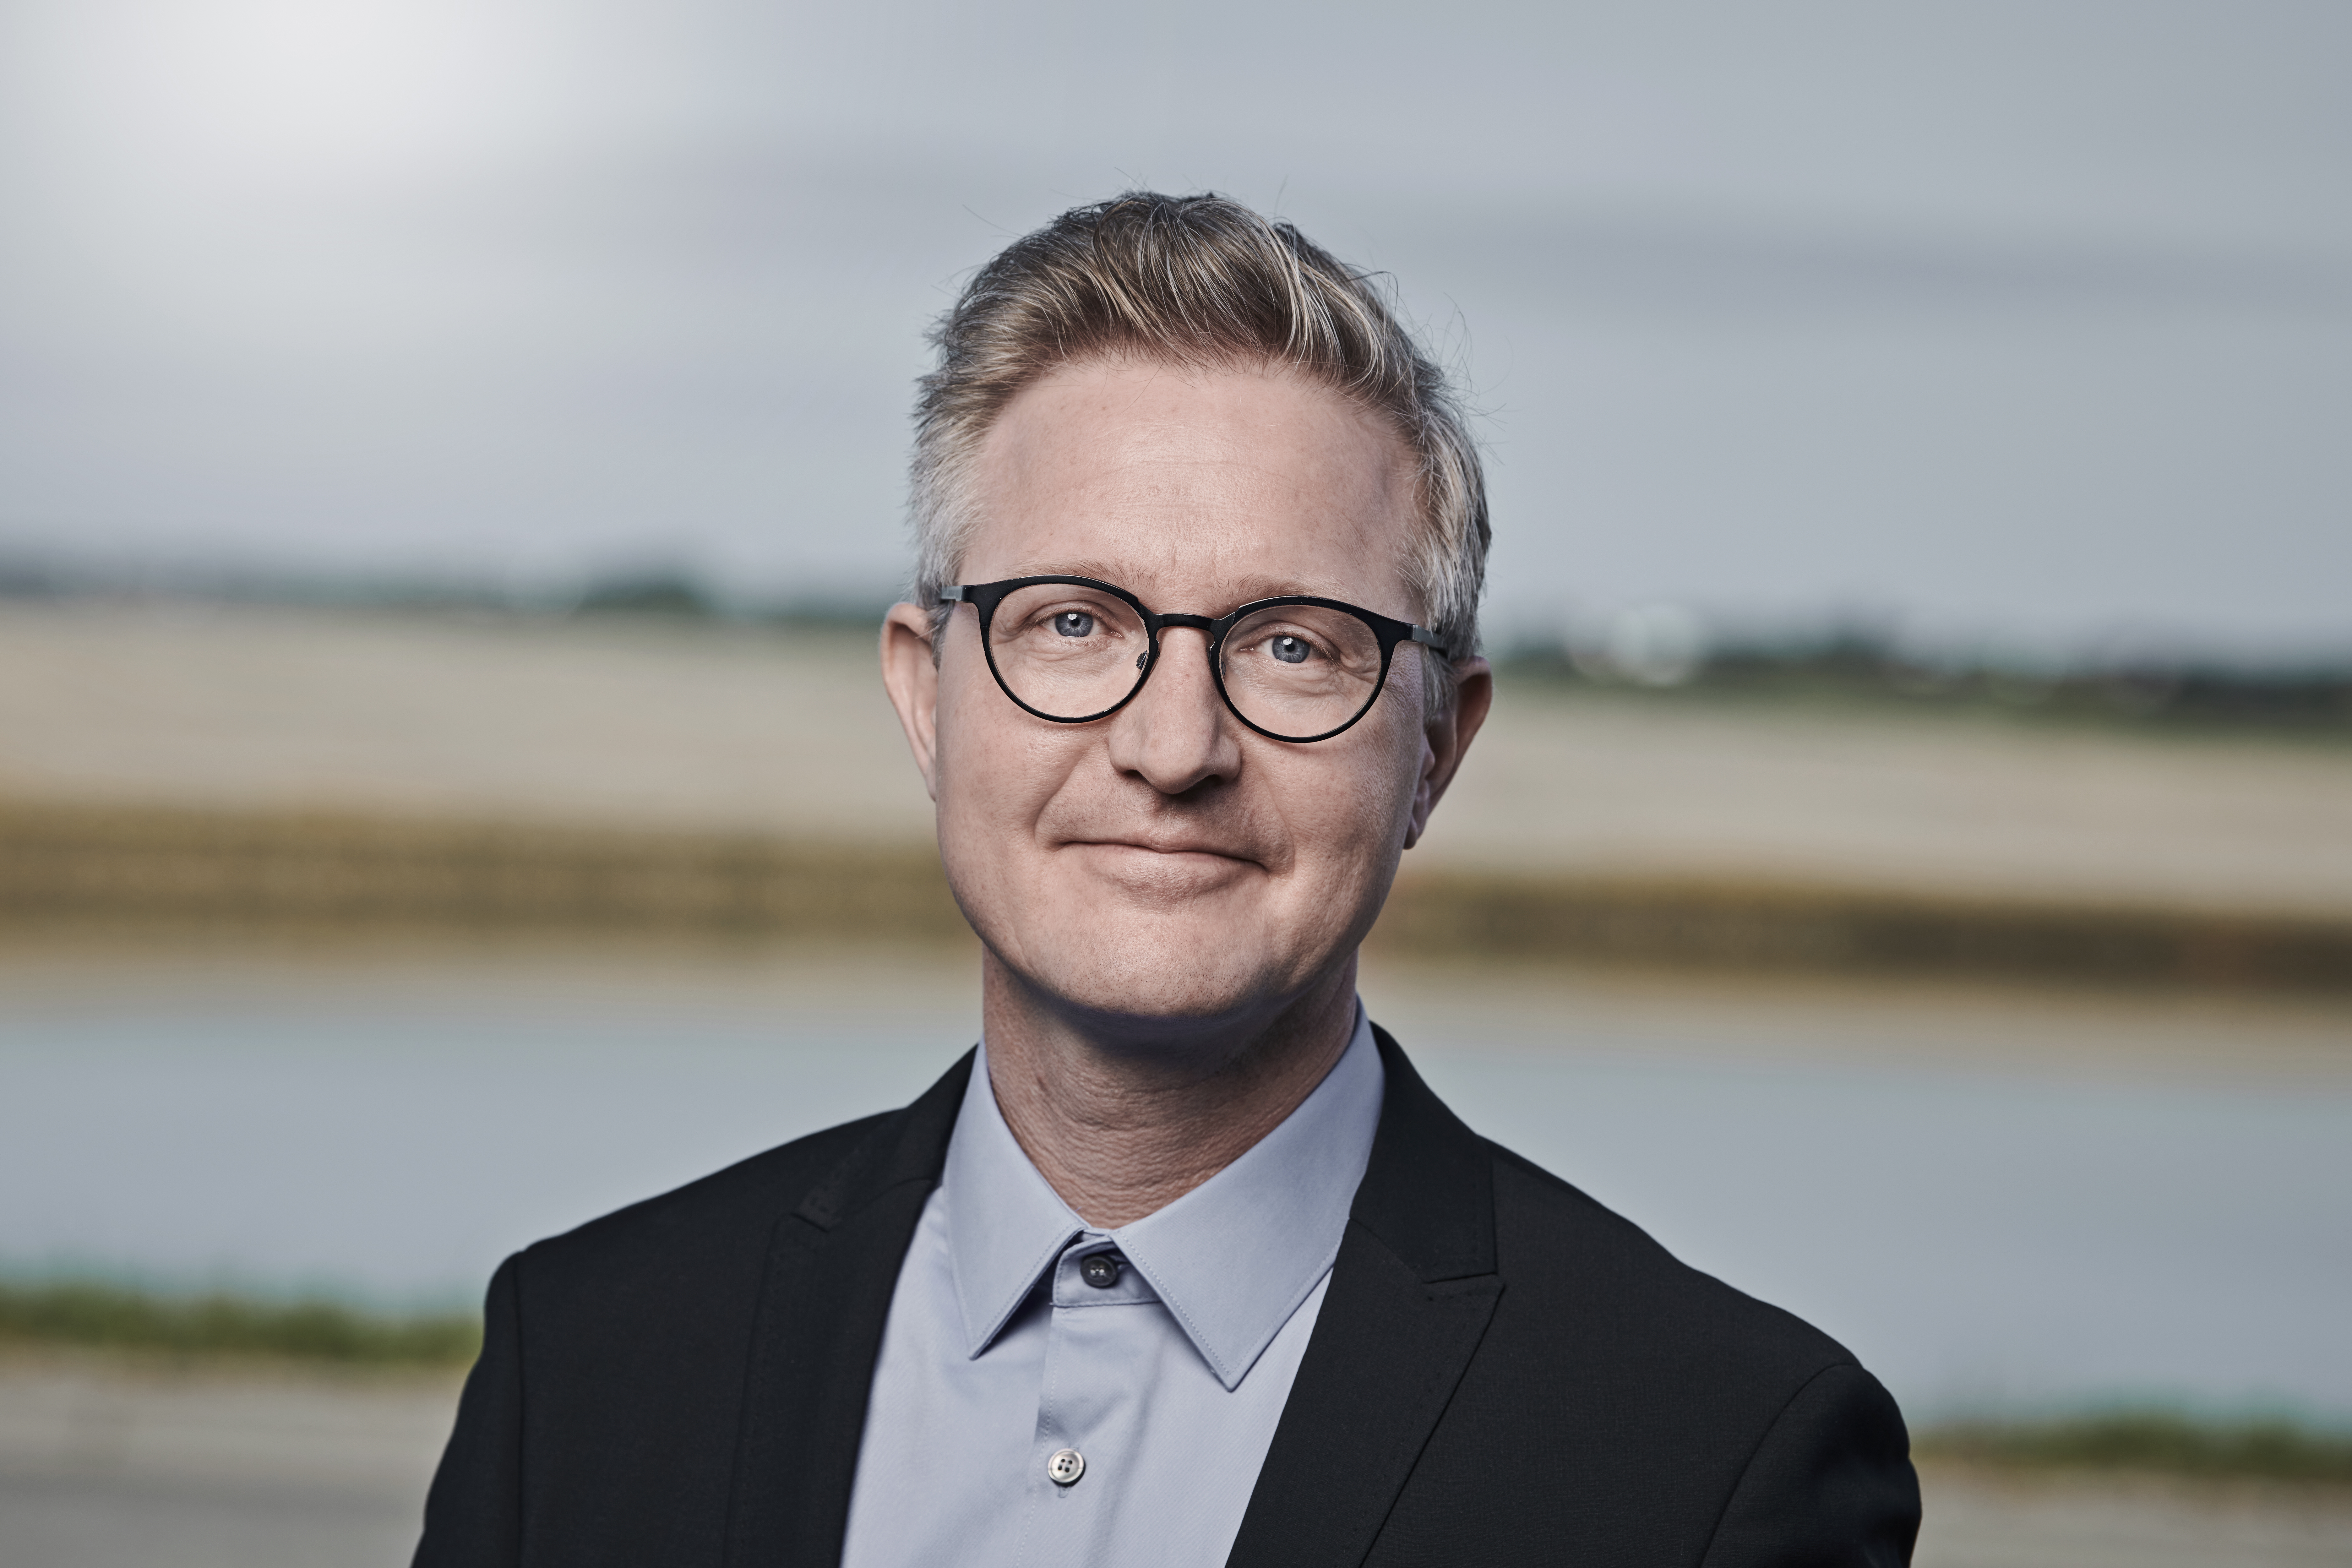 Jens Winther Erendal Haastrup